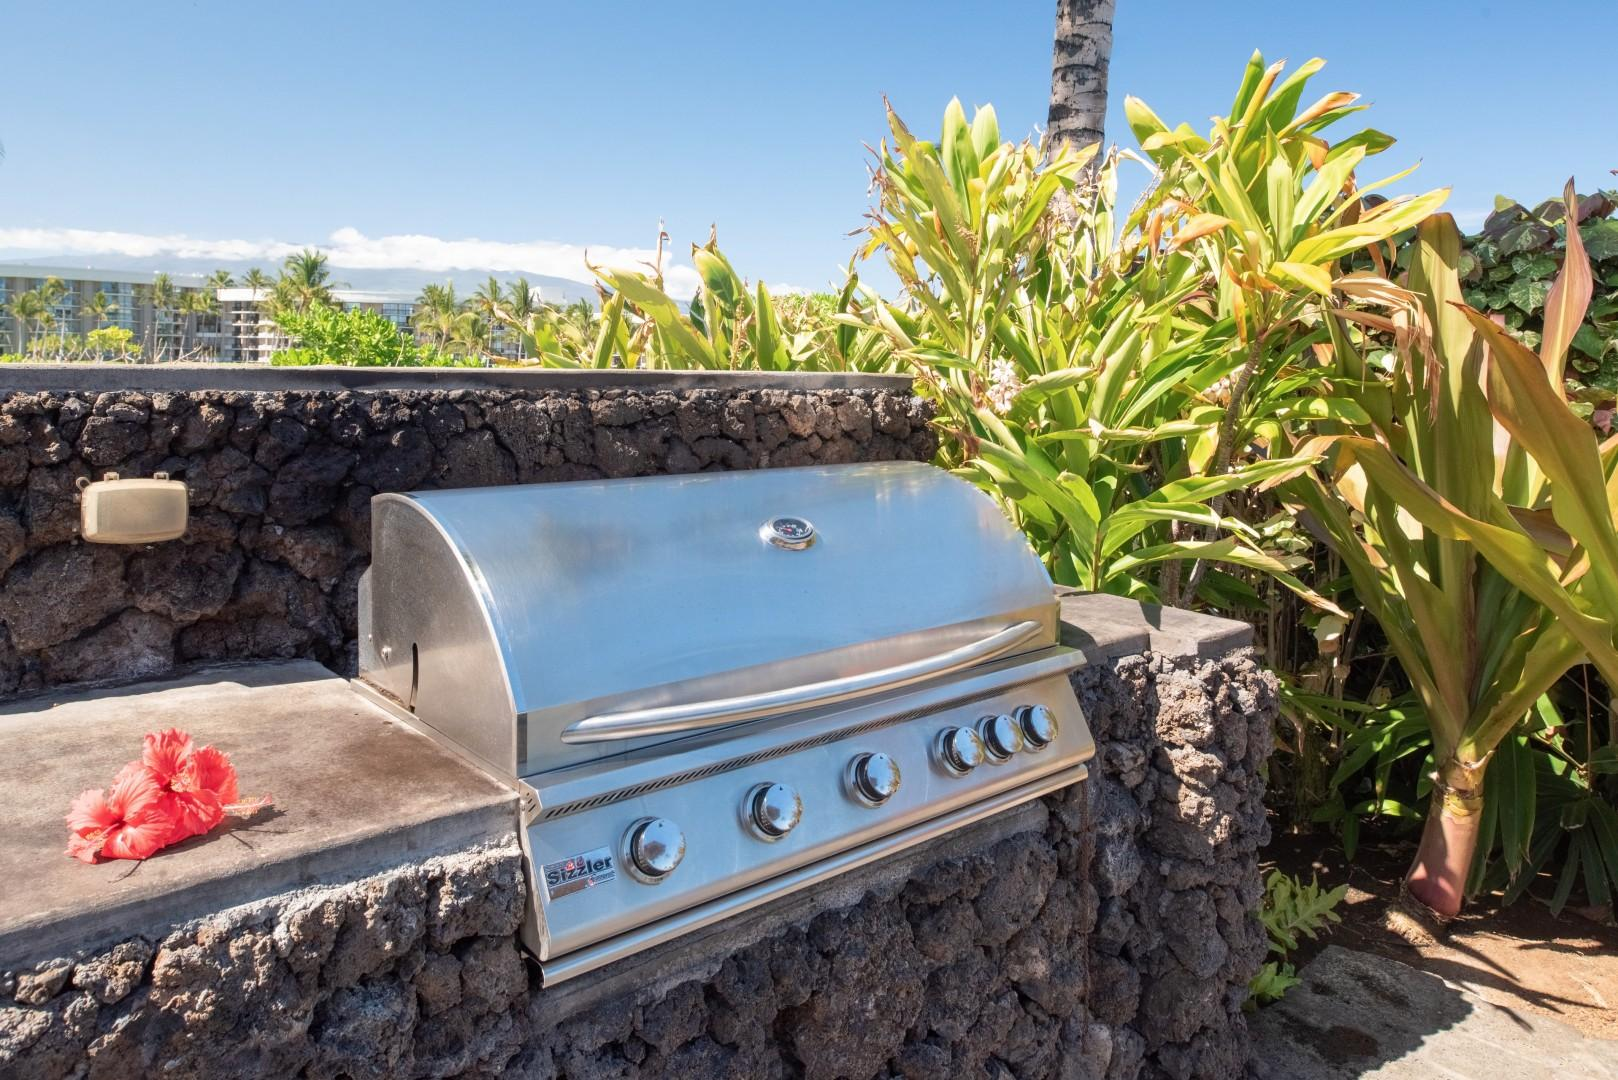 Another grilling alternative at the Hali'i Kai Resort's private amenity center by the pool.